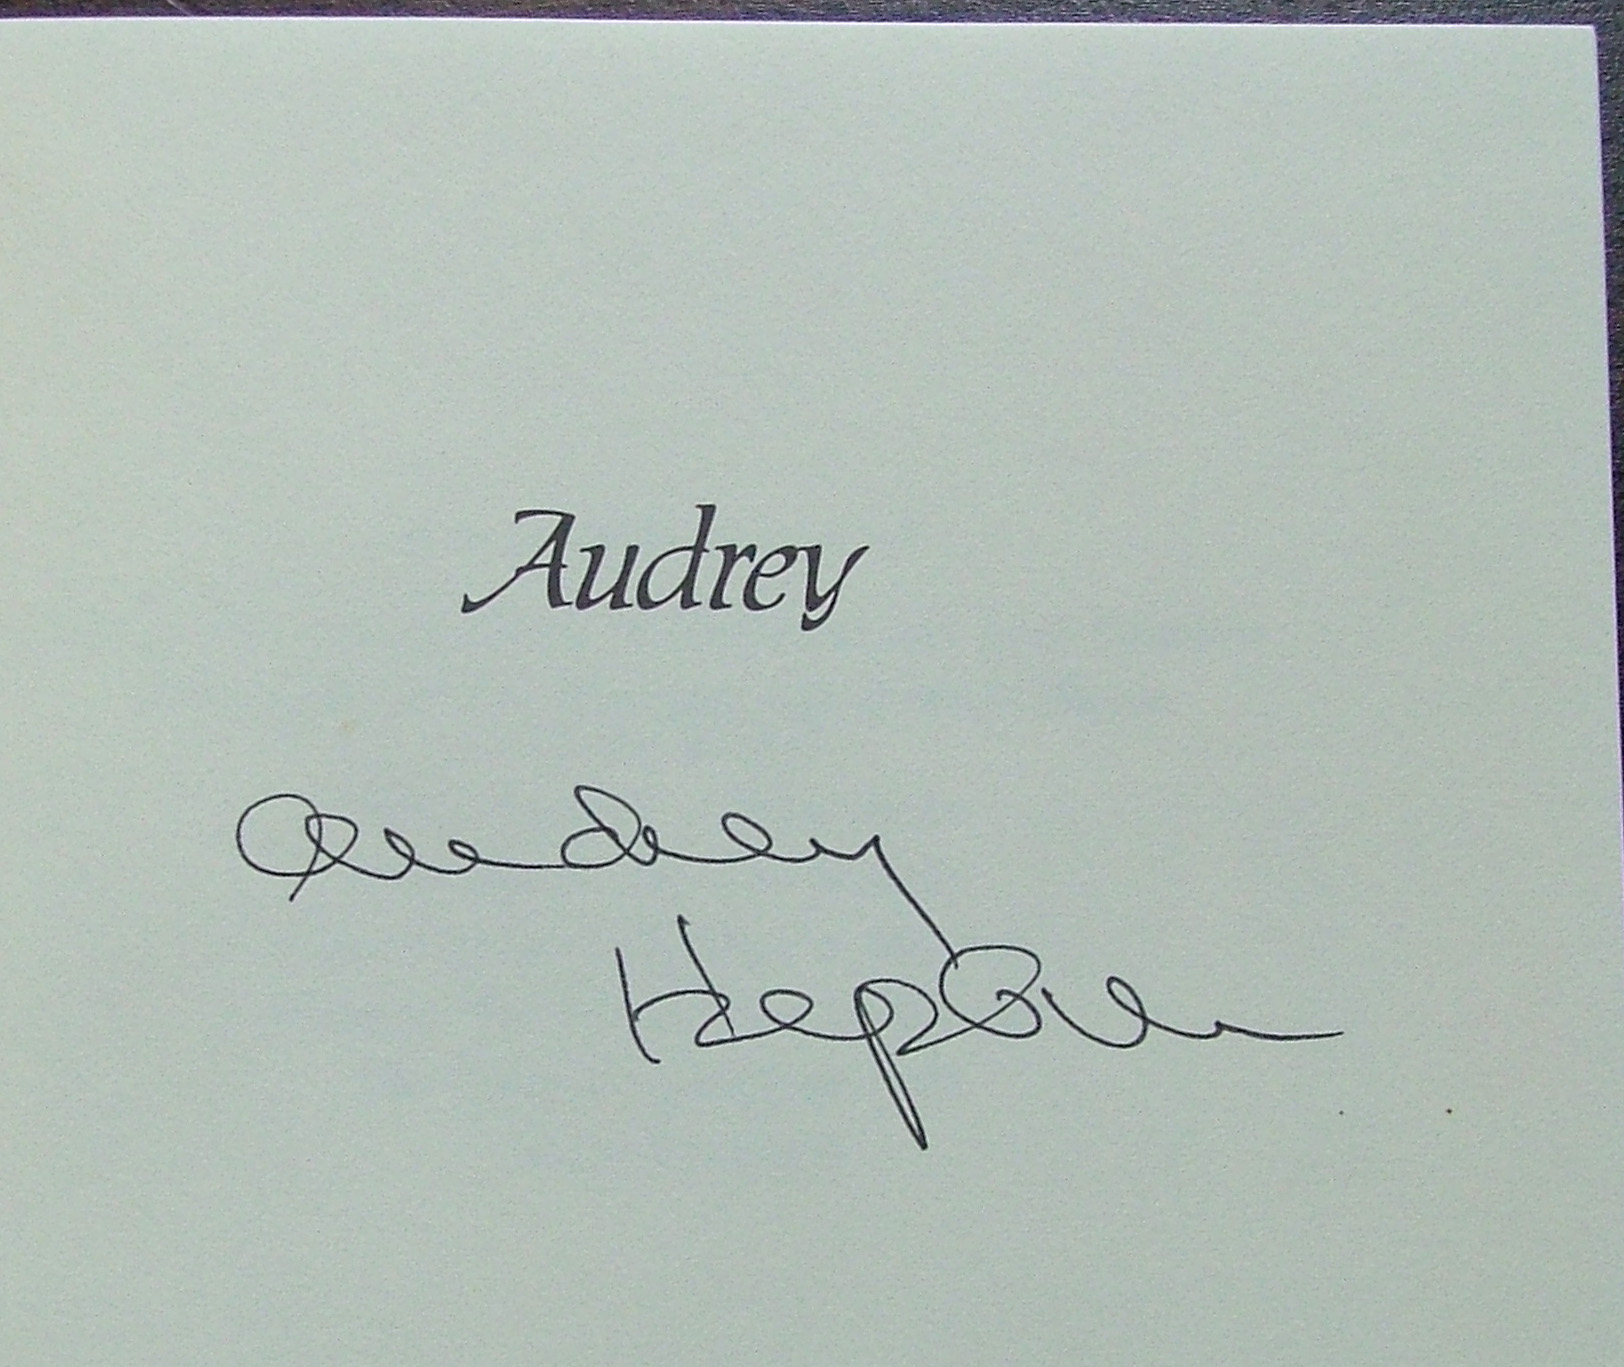 audrey the life of audrey hepburn signed by audrey on the half title